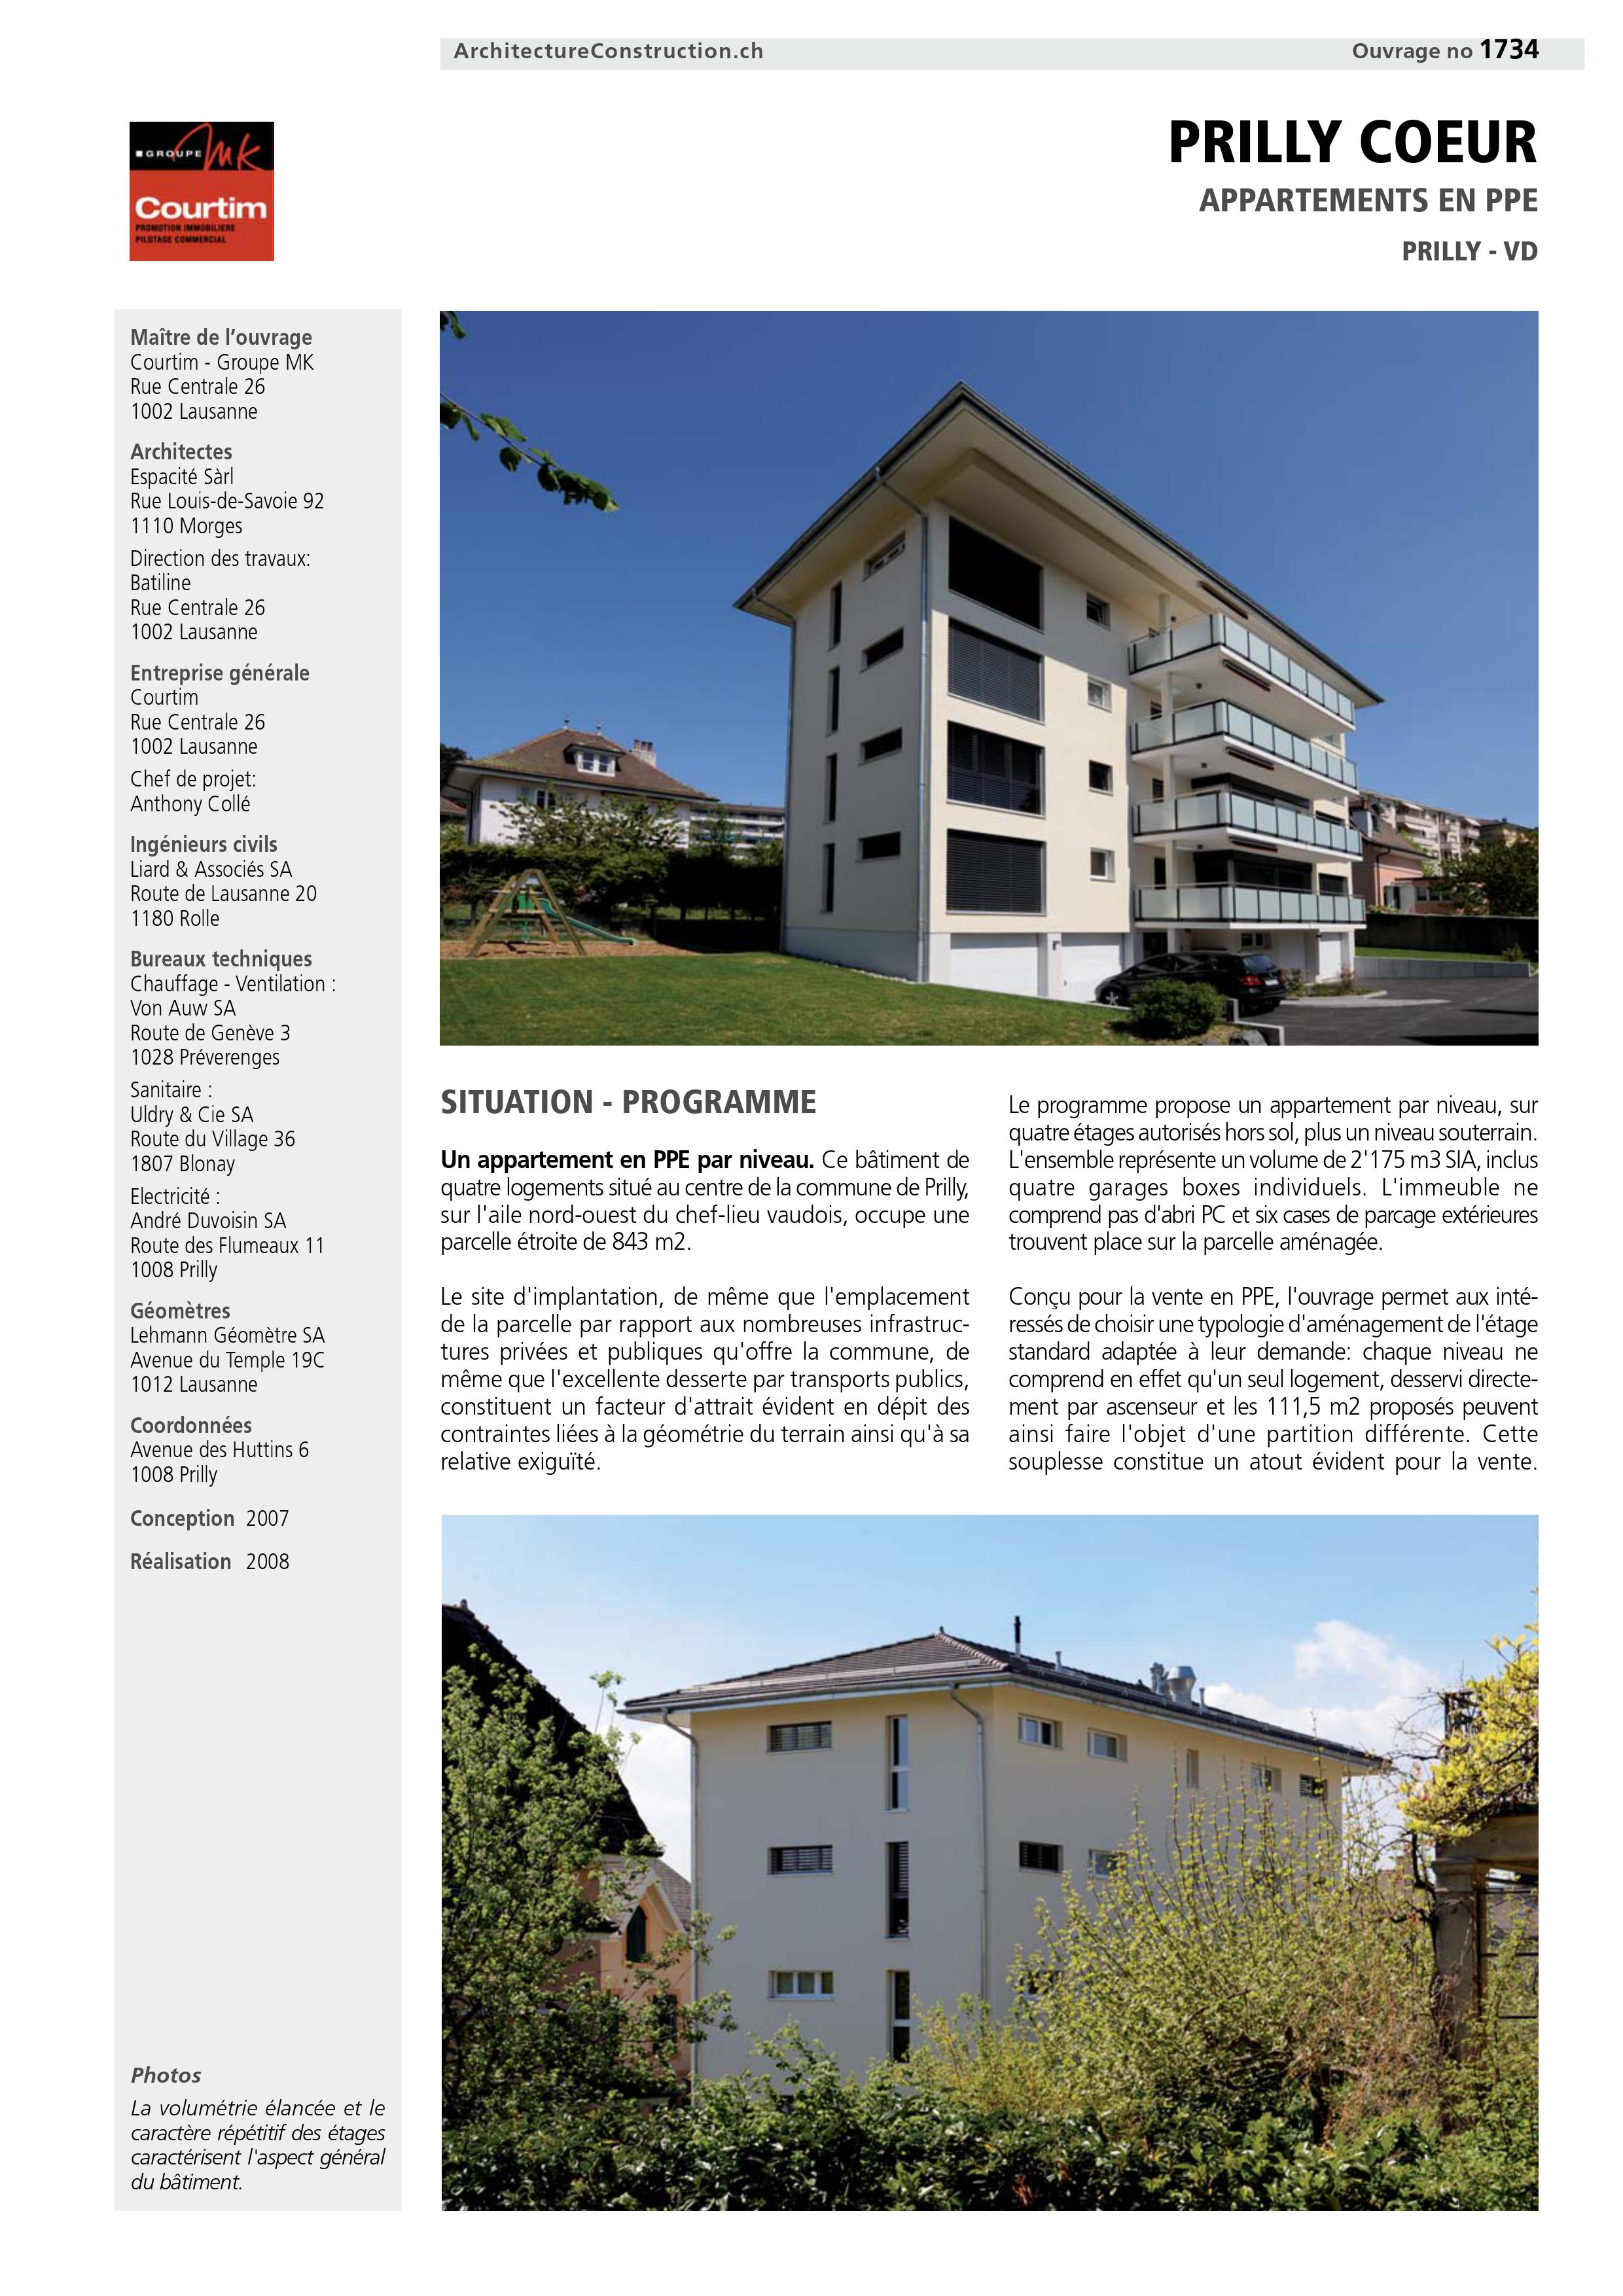 prilly-coeur-appartements-ppe-1